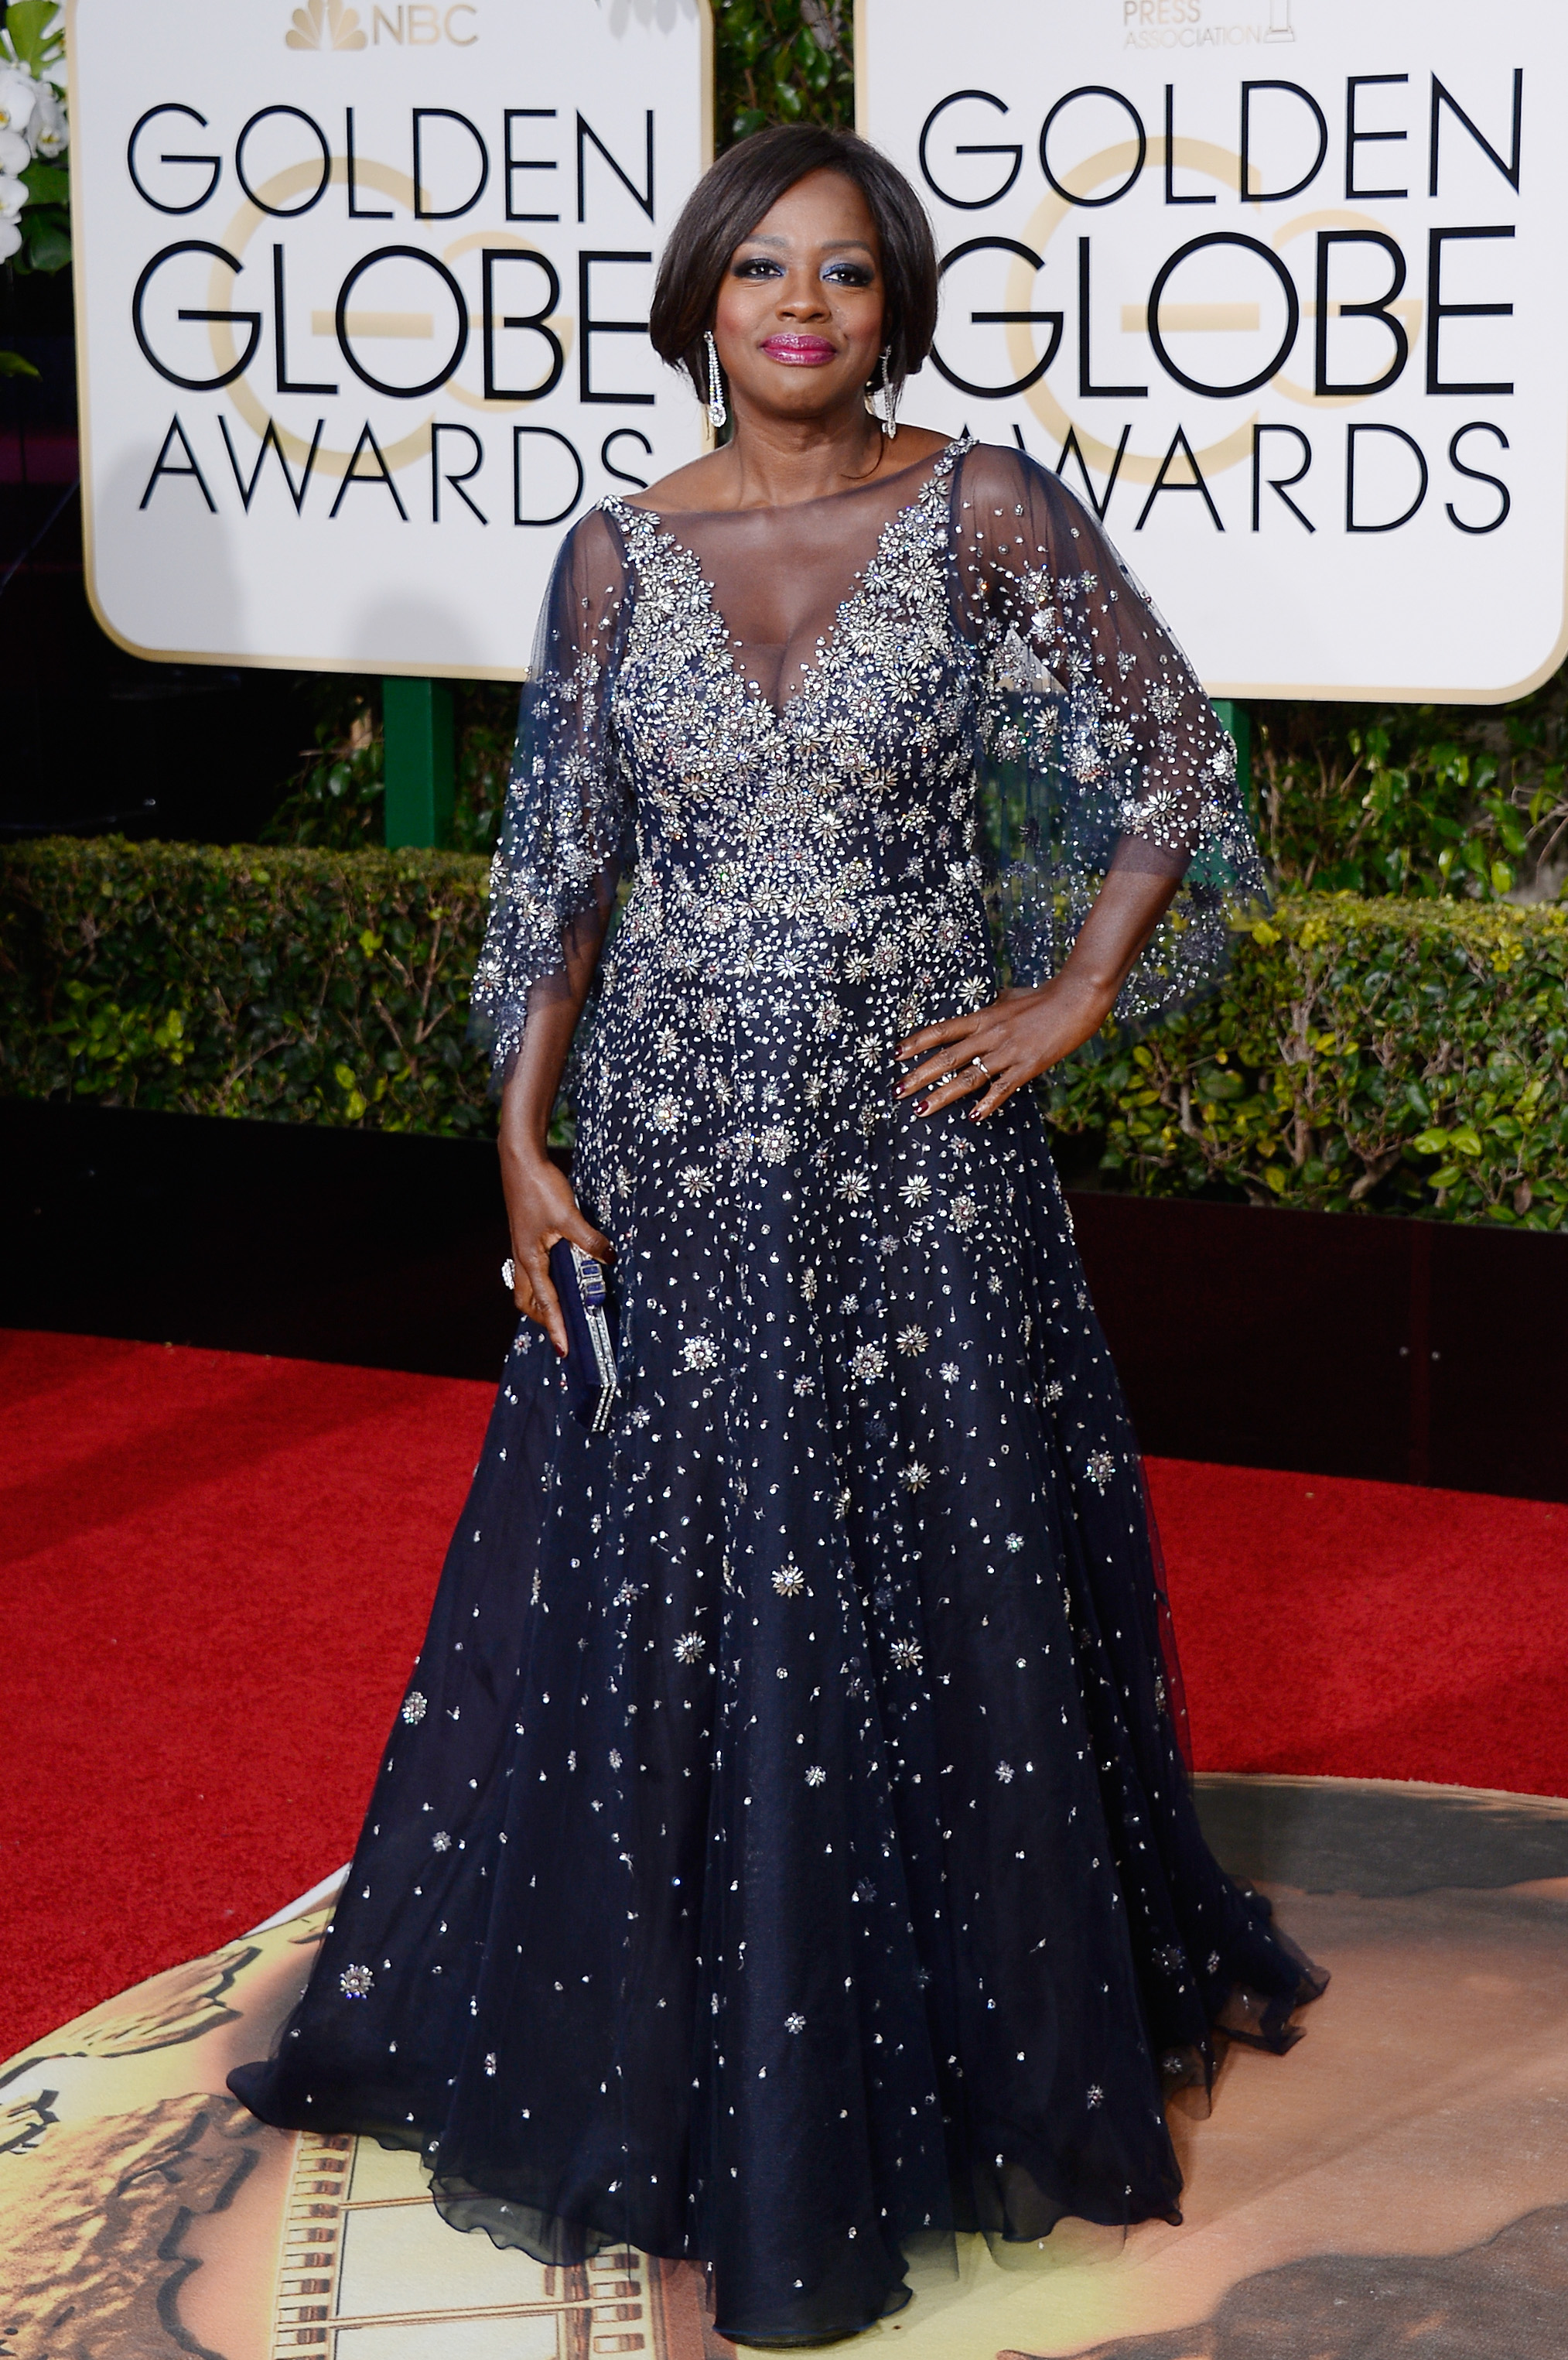 Viola Davis arrives to the 73rd Annual Golden Globe Awards on Jan. 10, 2016 in Beverly Hills.